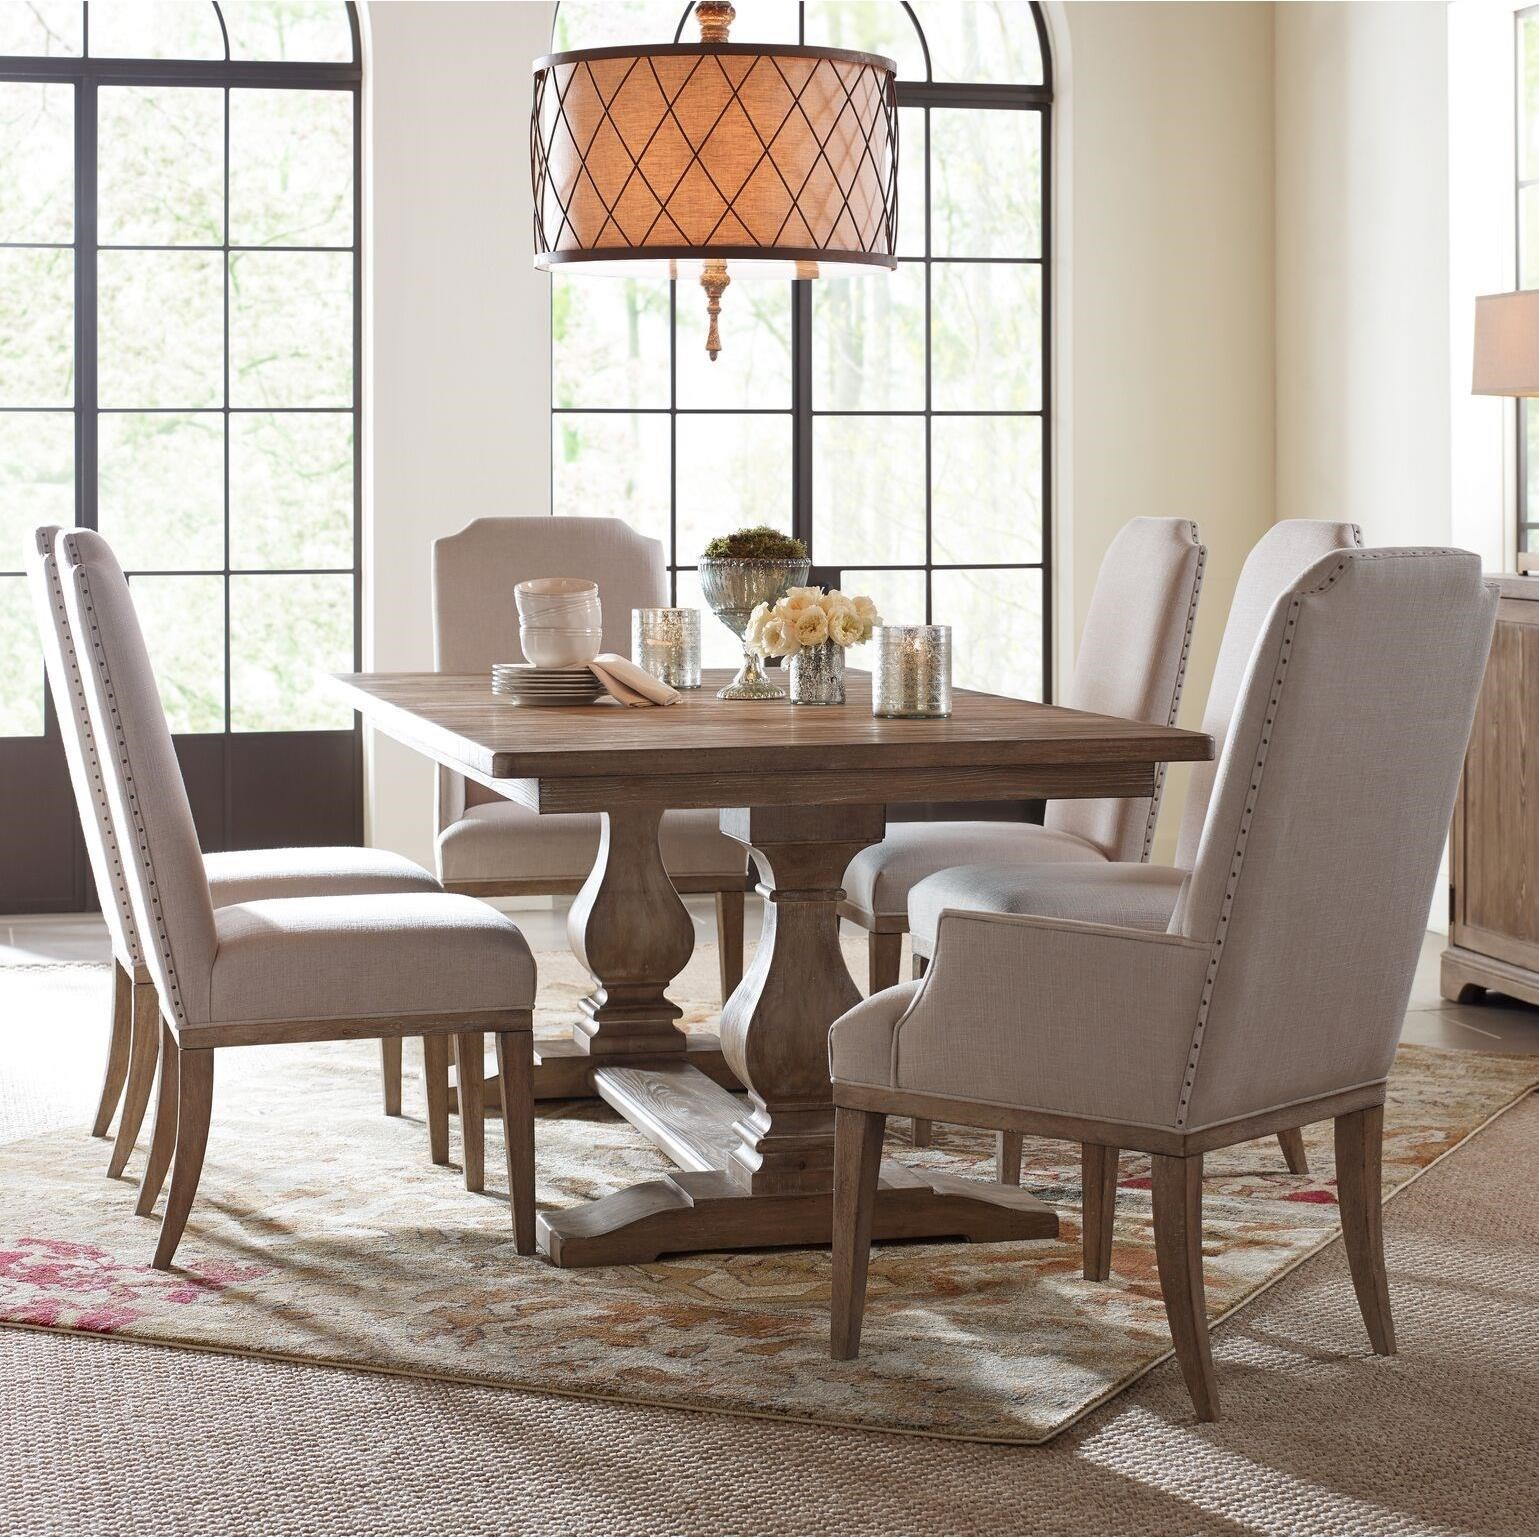 Monteverdi  7 Piece Rectangular Table Set by Rachael Ray Home by Legacy Classic at Fashion Furniture